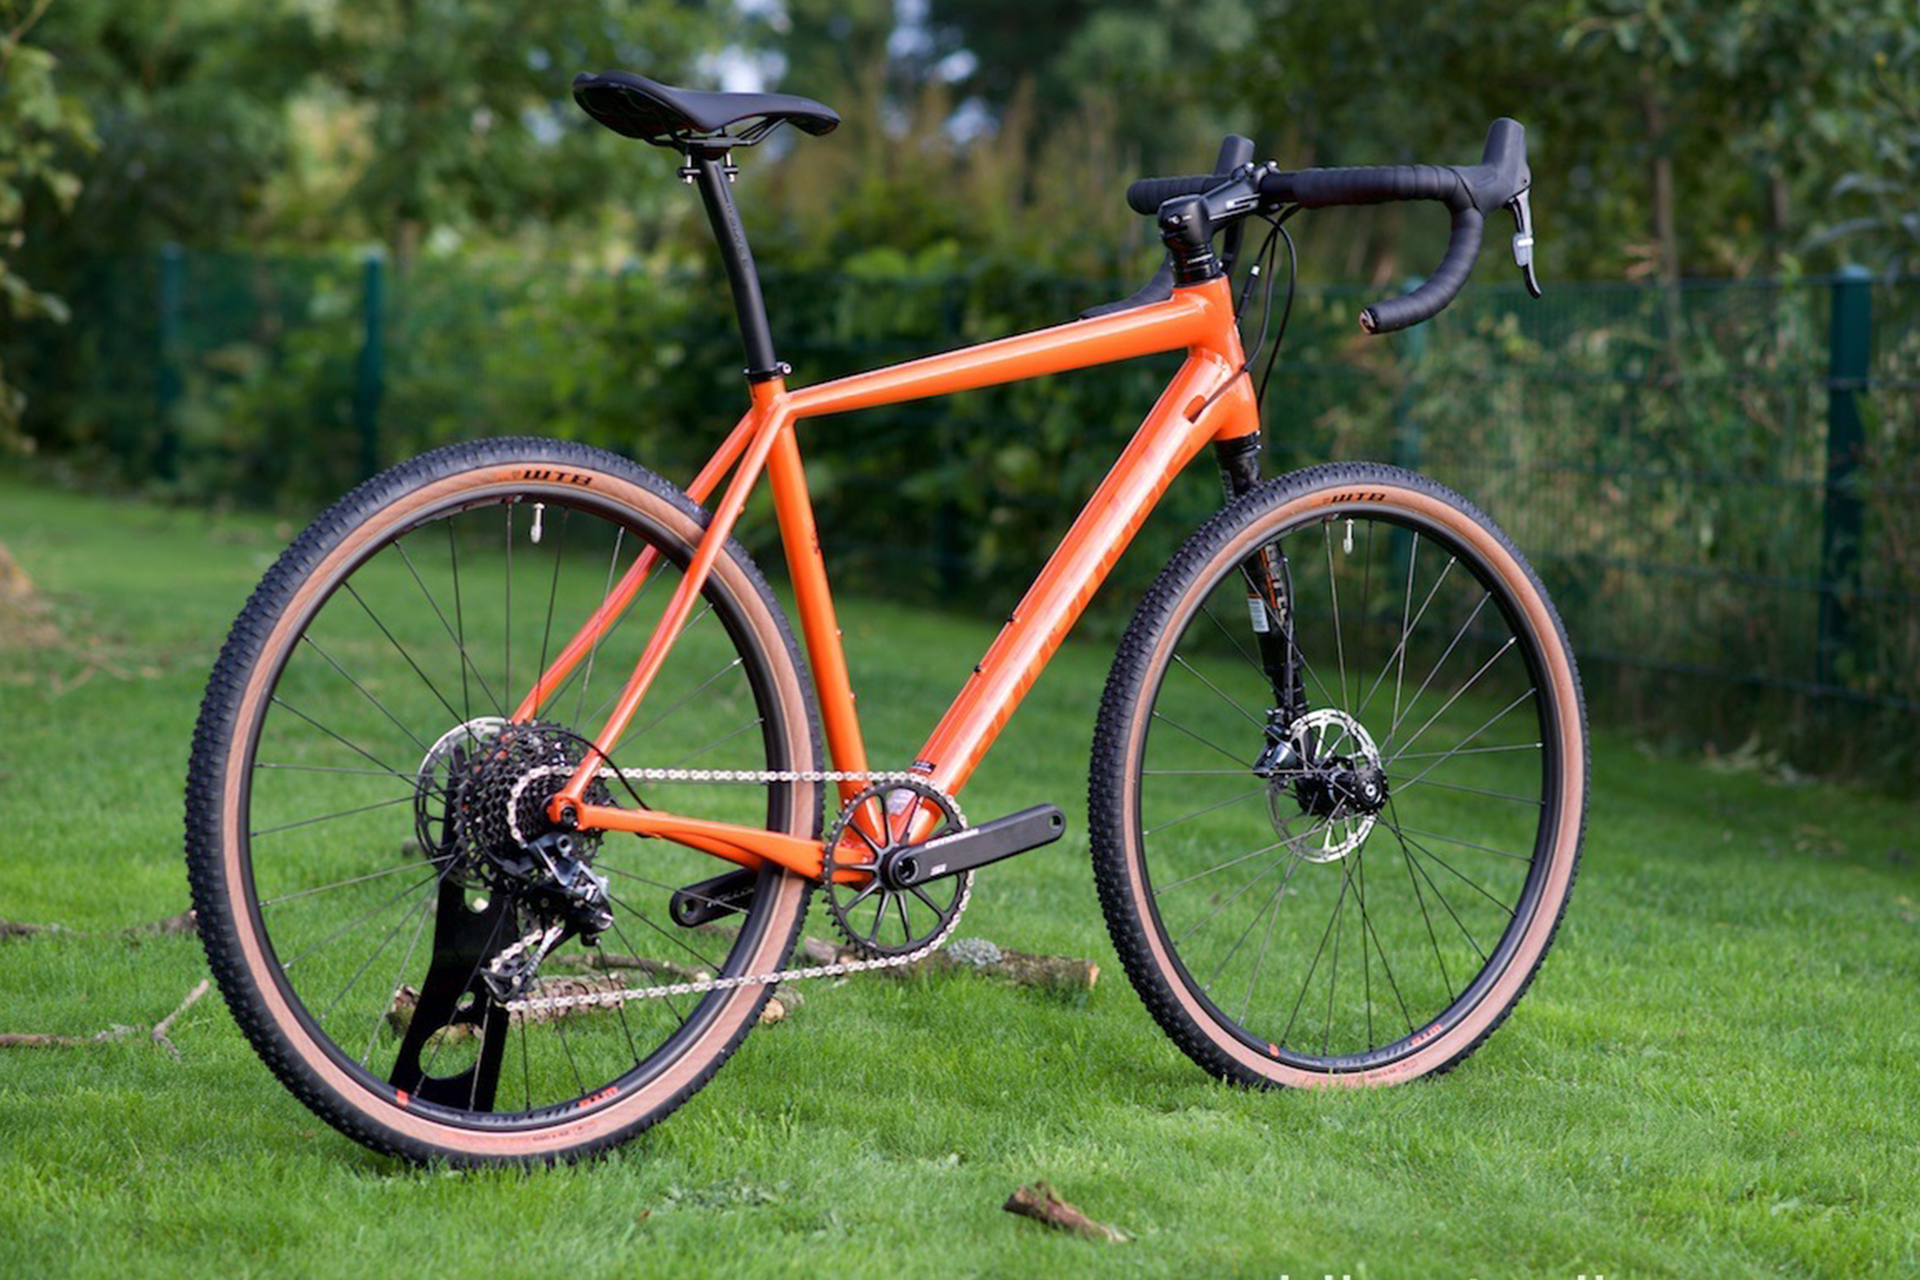 2018 Cannondale Slate Ranked As One Of The Top 5 Gravel